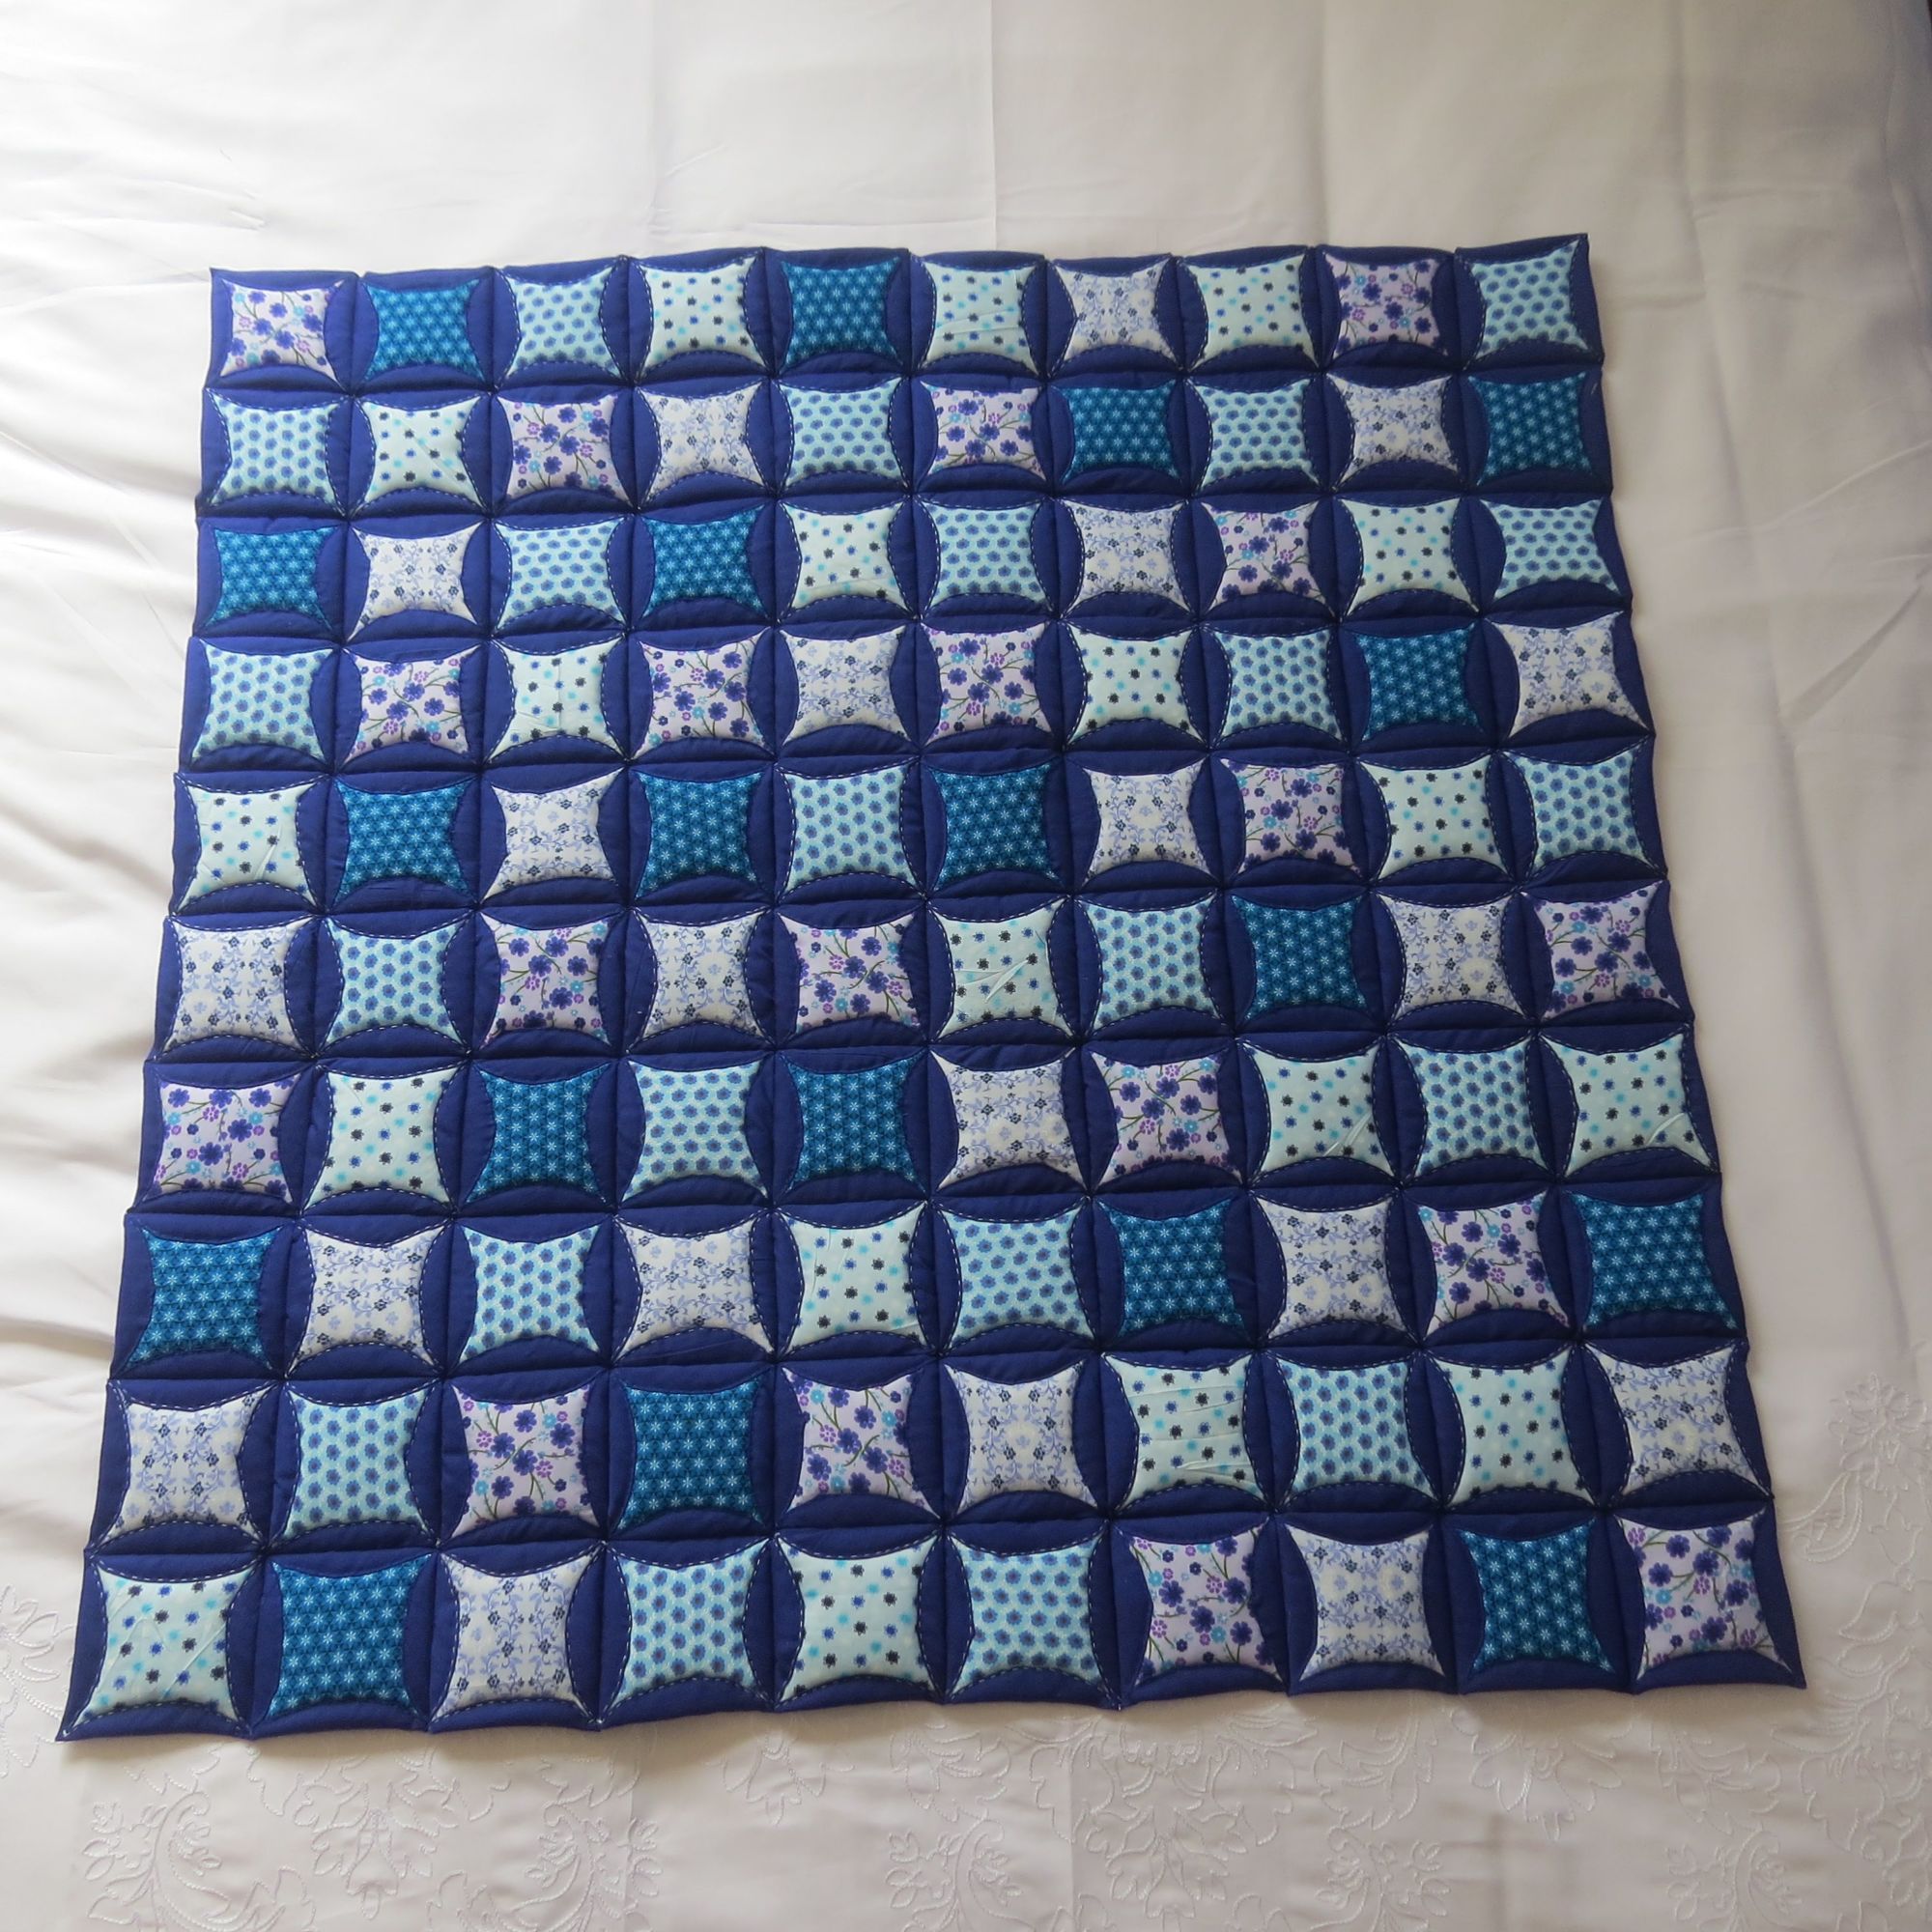 """sumi's photos in Ongoing Quilt Projects, Continued from """"No Appreciation for Fine Hand Quilting"""" Thread"""